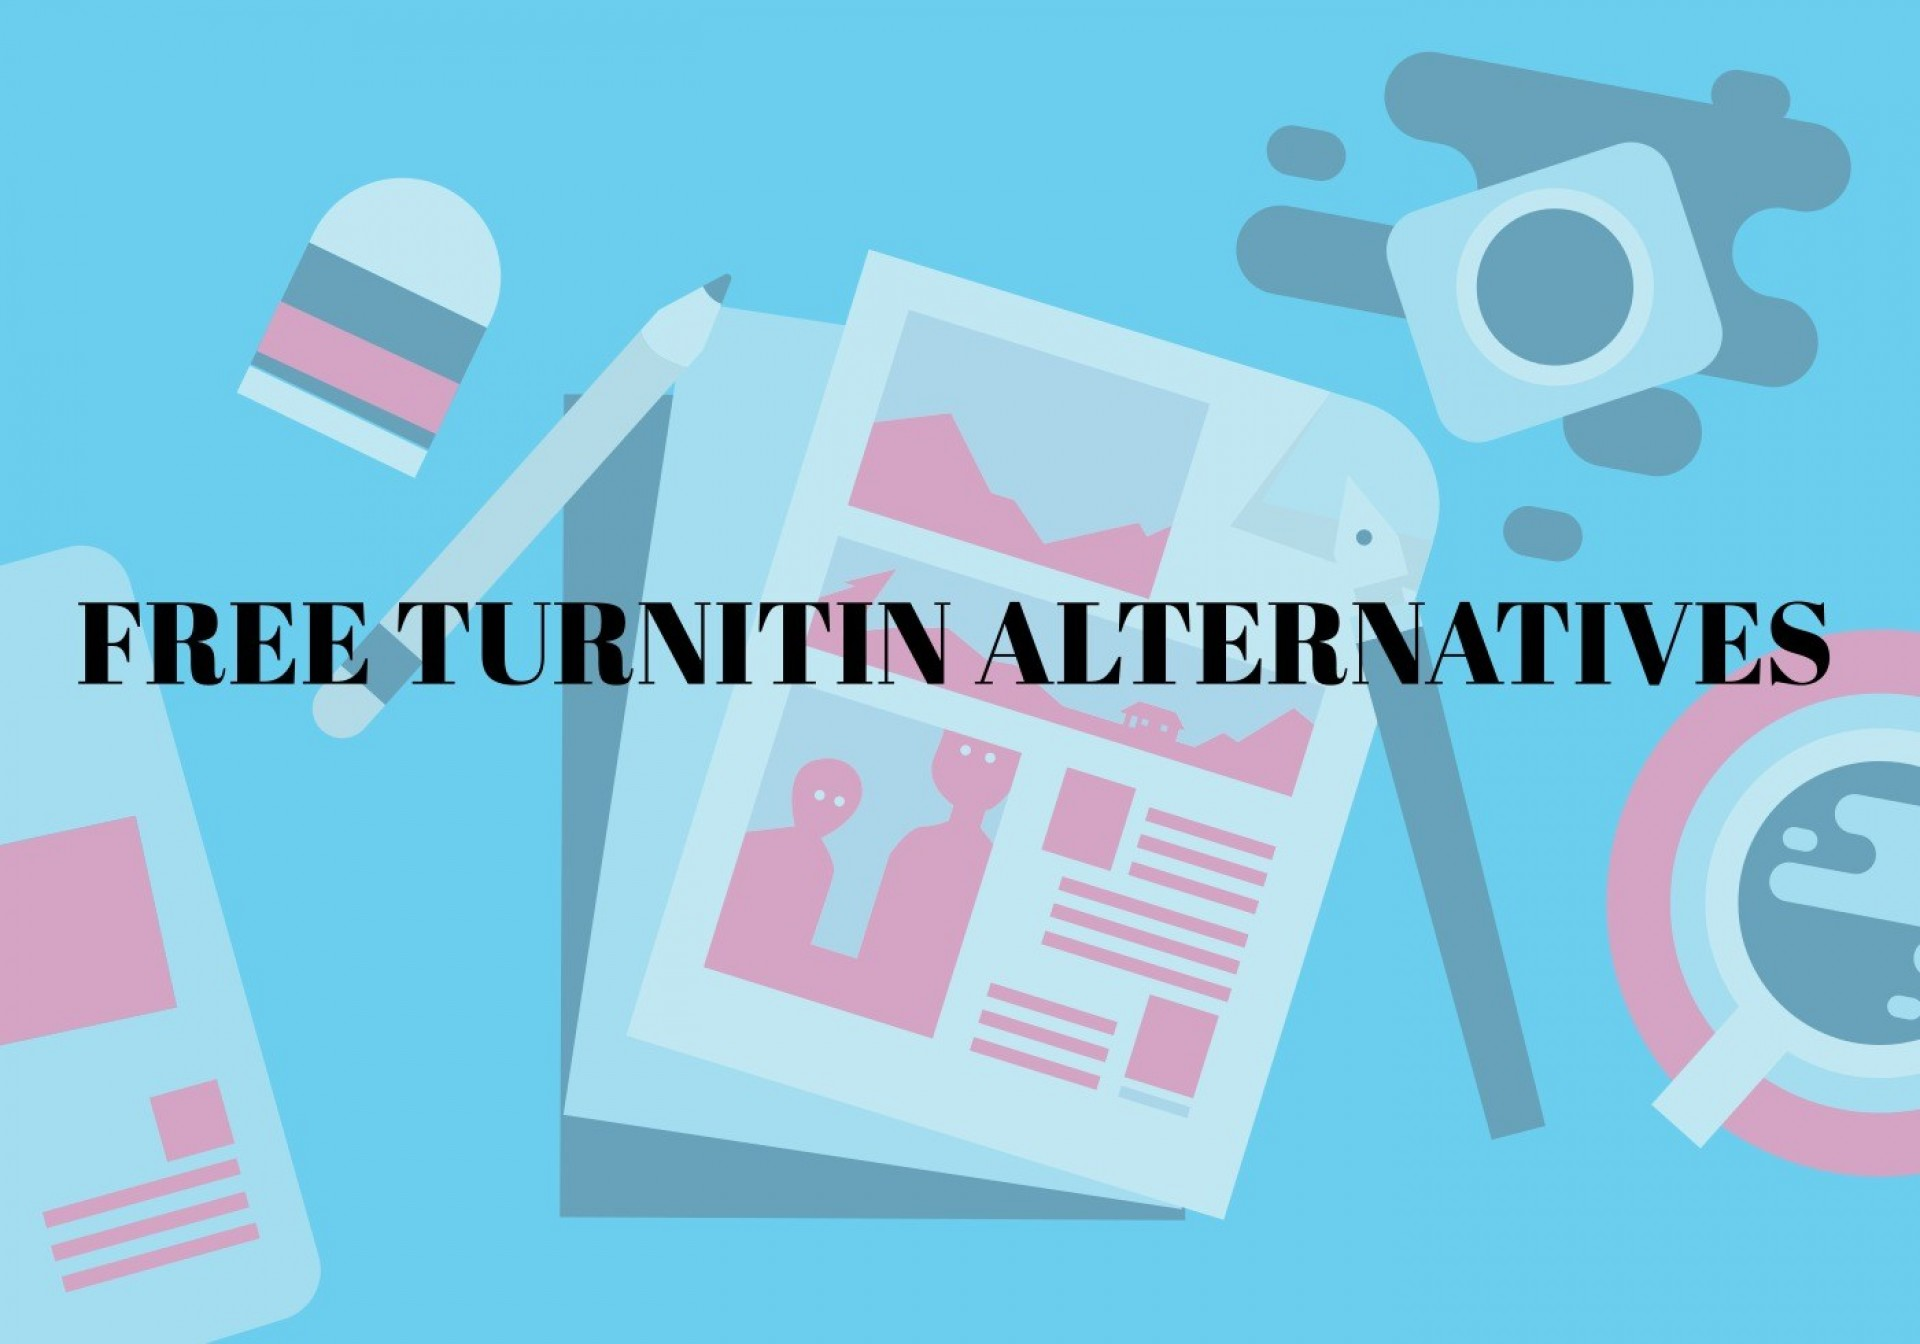 023 Research Paper Turntin Alternatives Free Plagiarism Checker For Students Unique Online Turnitin Check With Percentage Software 1920